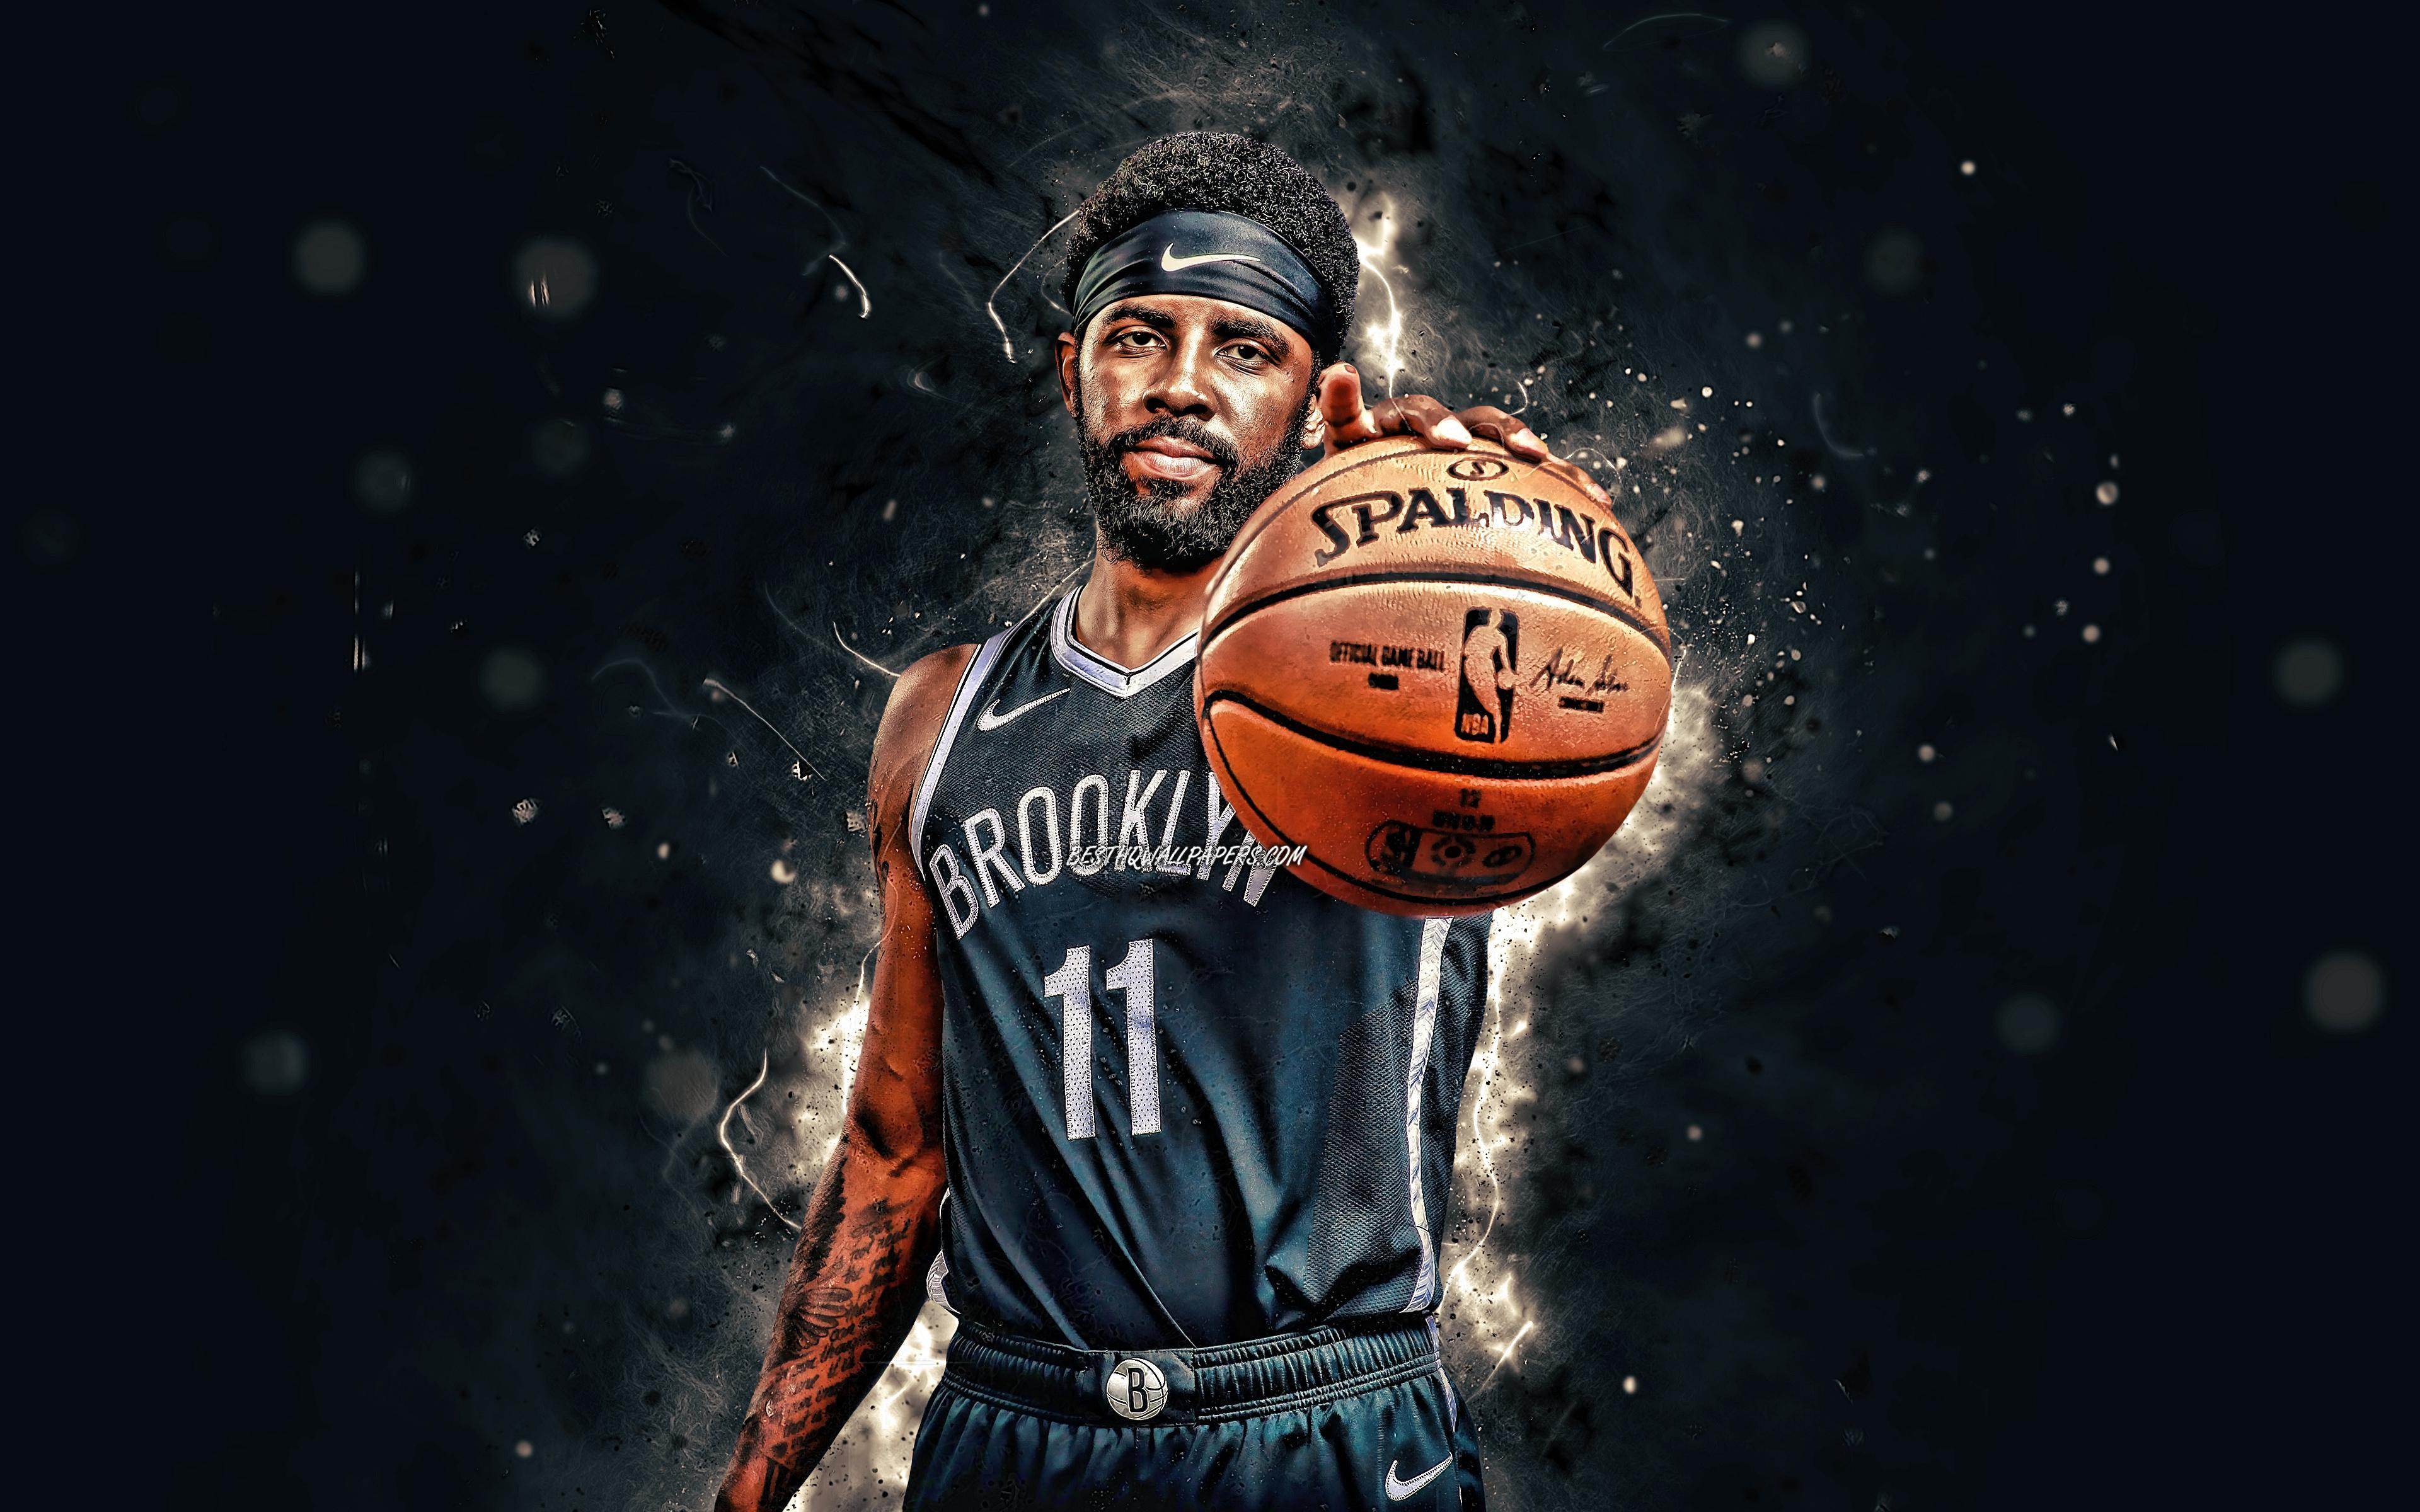 Kyrie Irving Nets HD Wallpapers   Top Kyrie Irving Nets HD 3840x2400